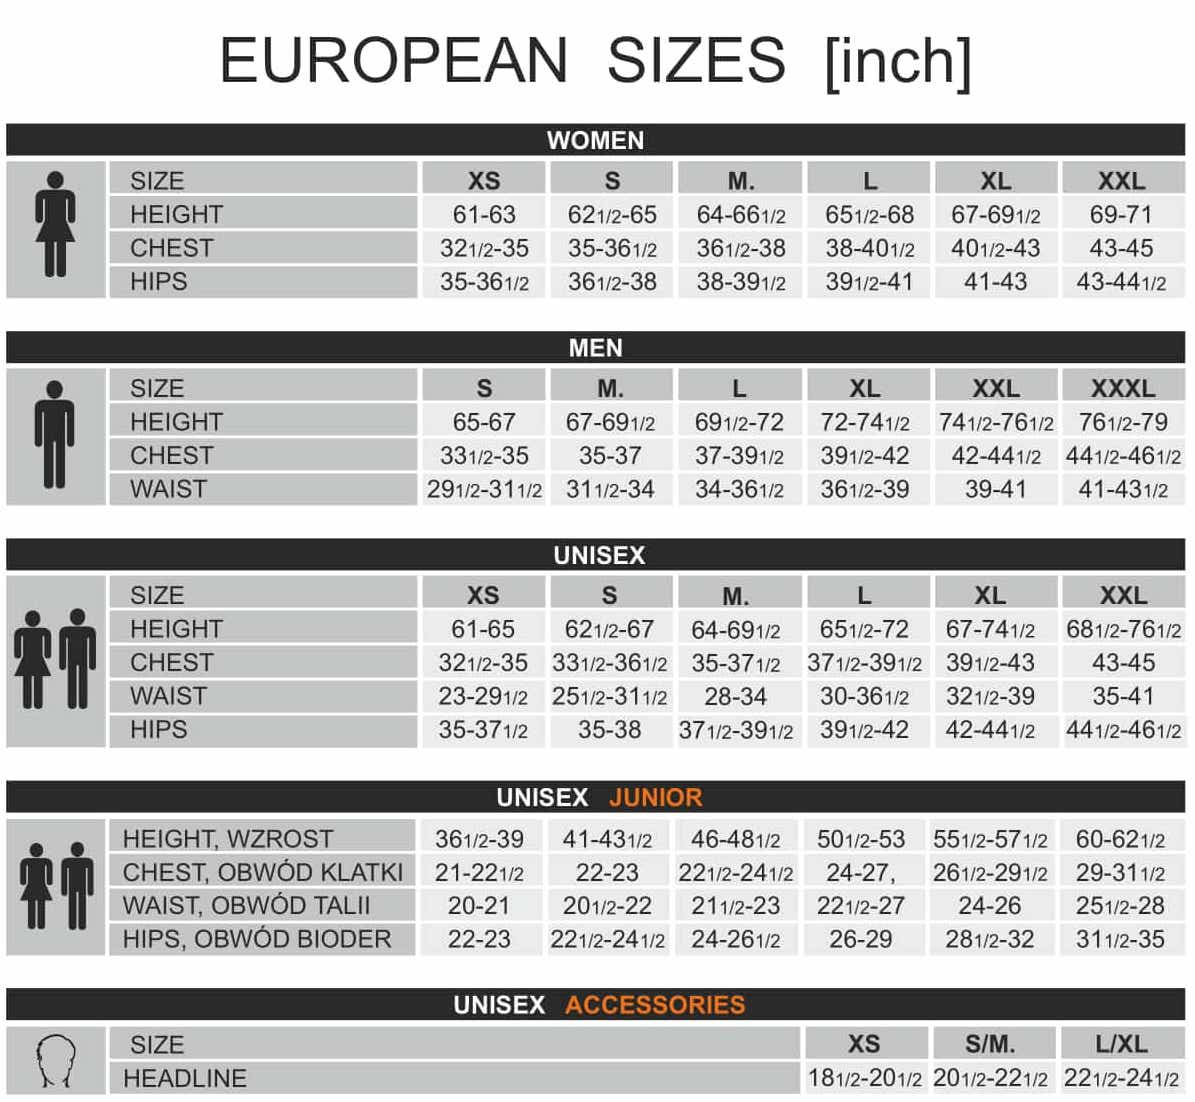 Brubeck Body Guard Size Guide. As a company founded in Europe, our sizing fits snug. Check this chart to ensure you get the perfect fit